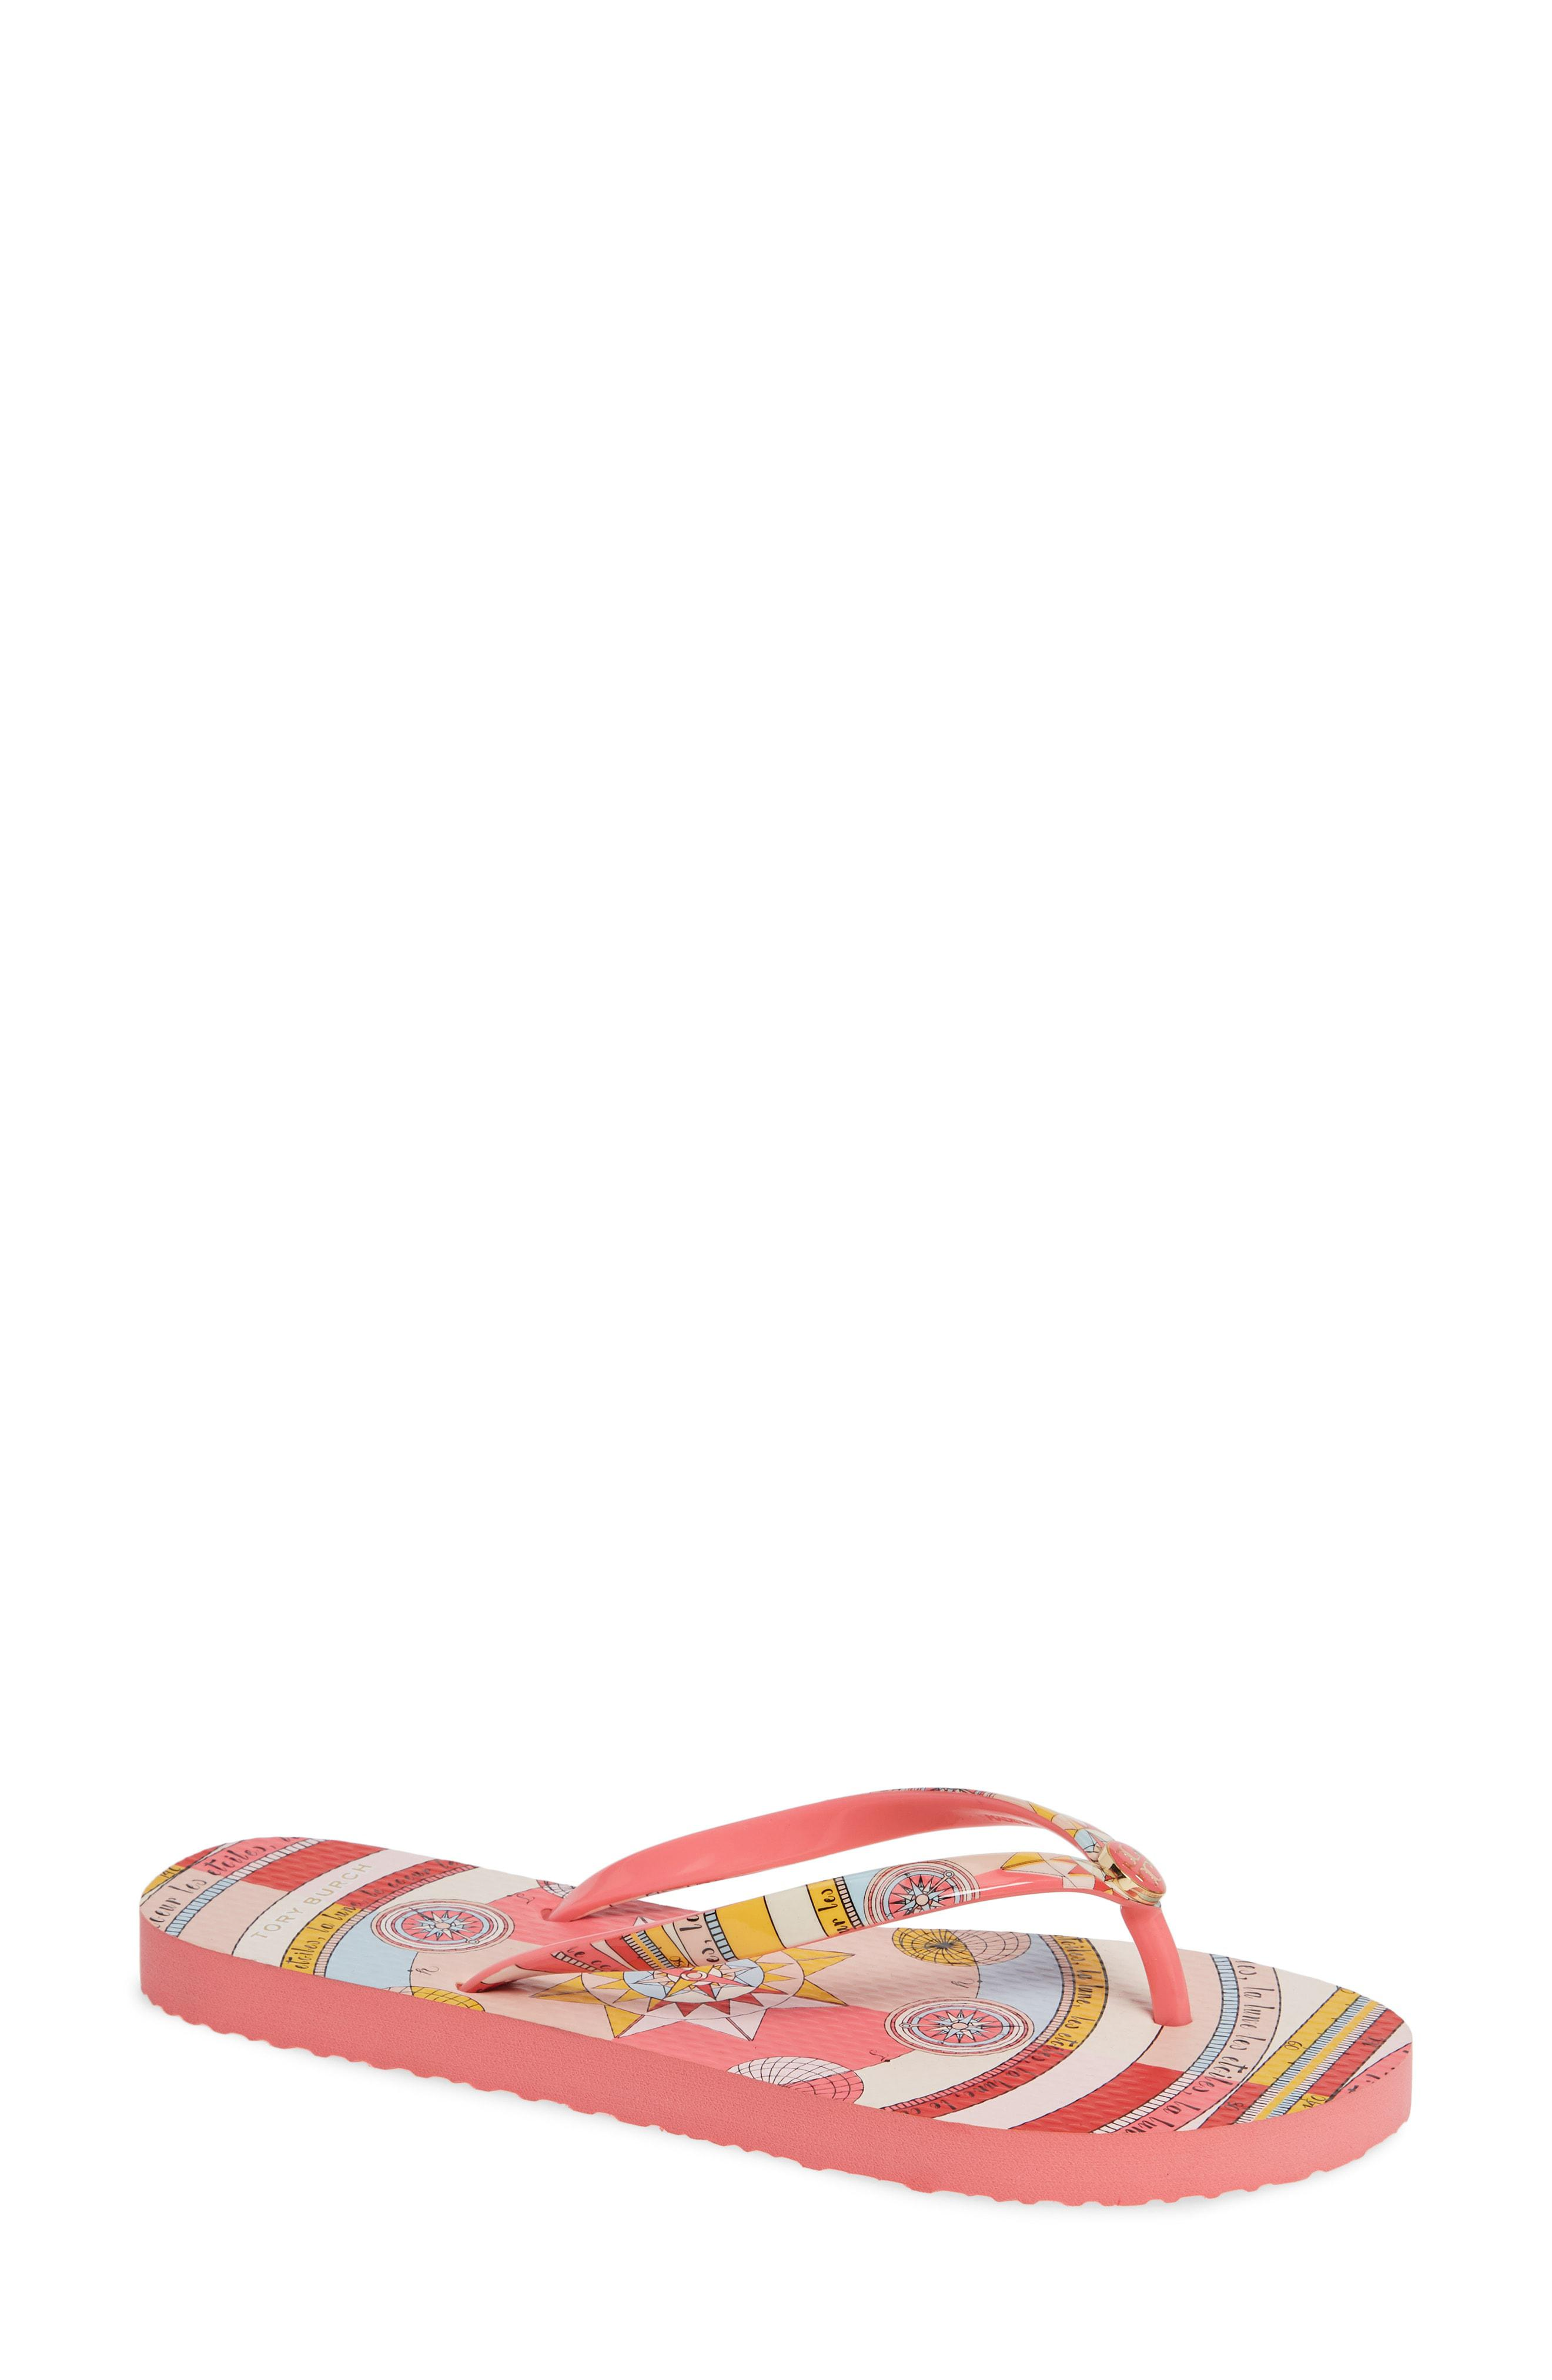 d8991598e Lyst - Tory Burch Thin Flip Flop in Pink